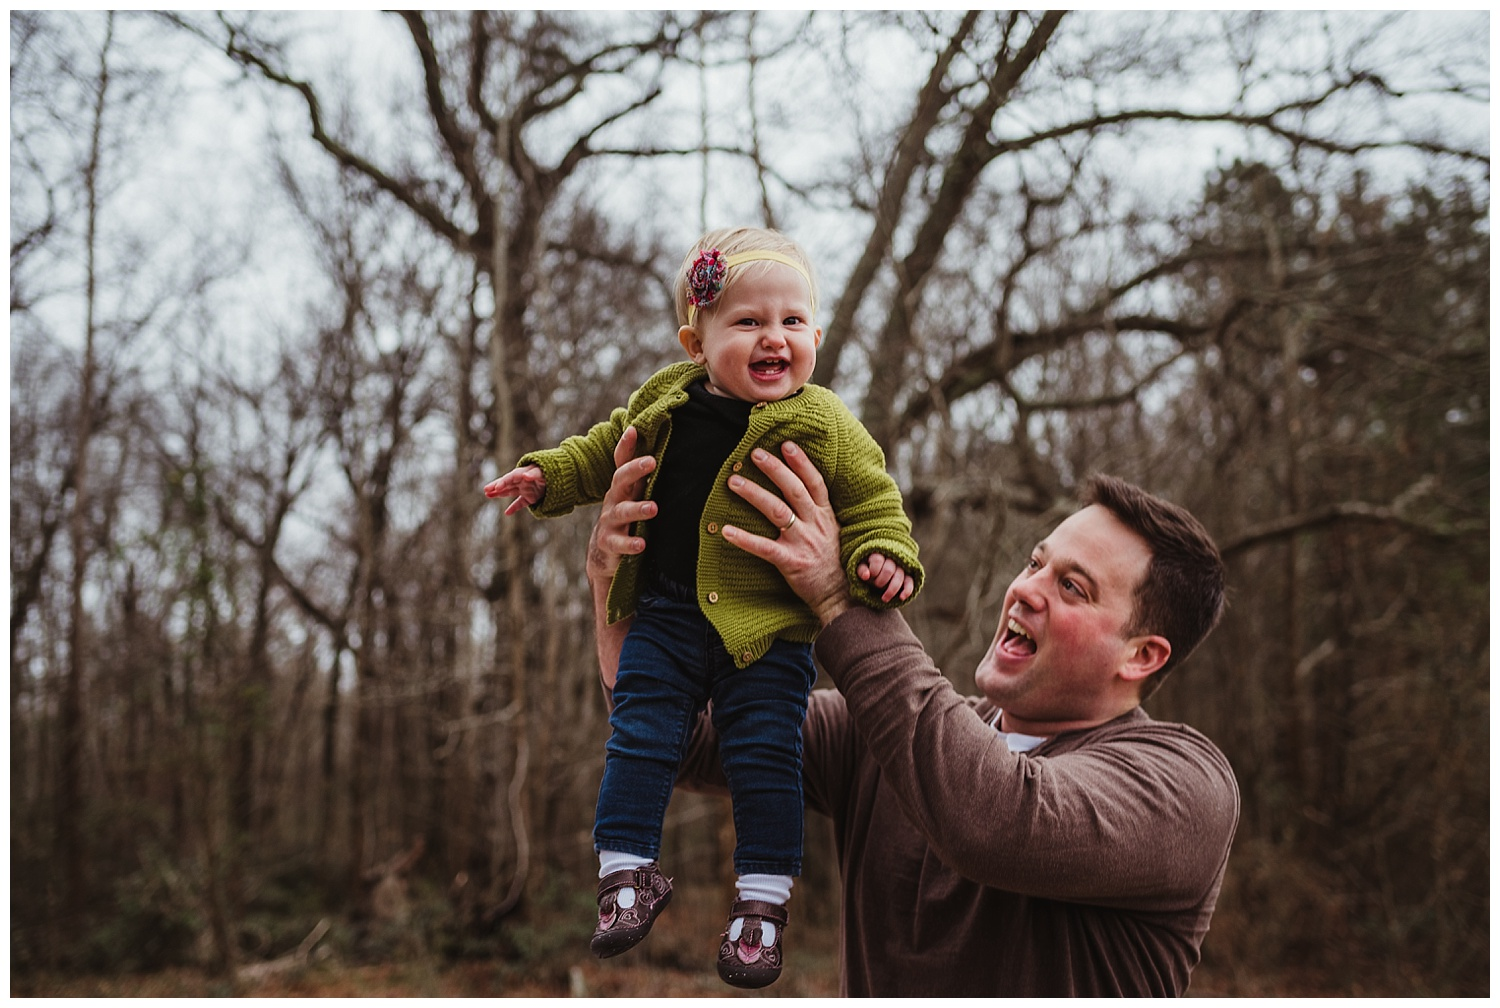 The dad lifts his baby daughter in the air like Simba from the Lion King during the family photo session in Wake Forest, North Carolina.